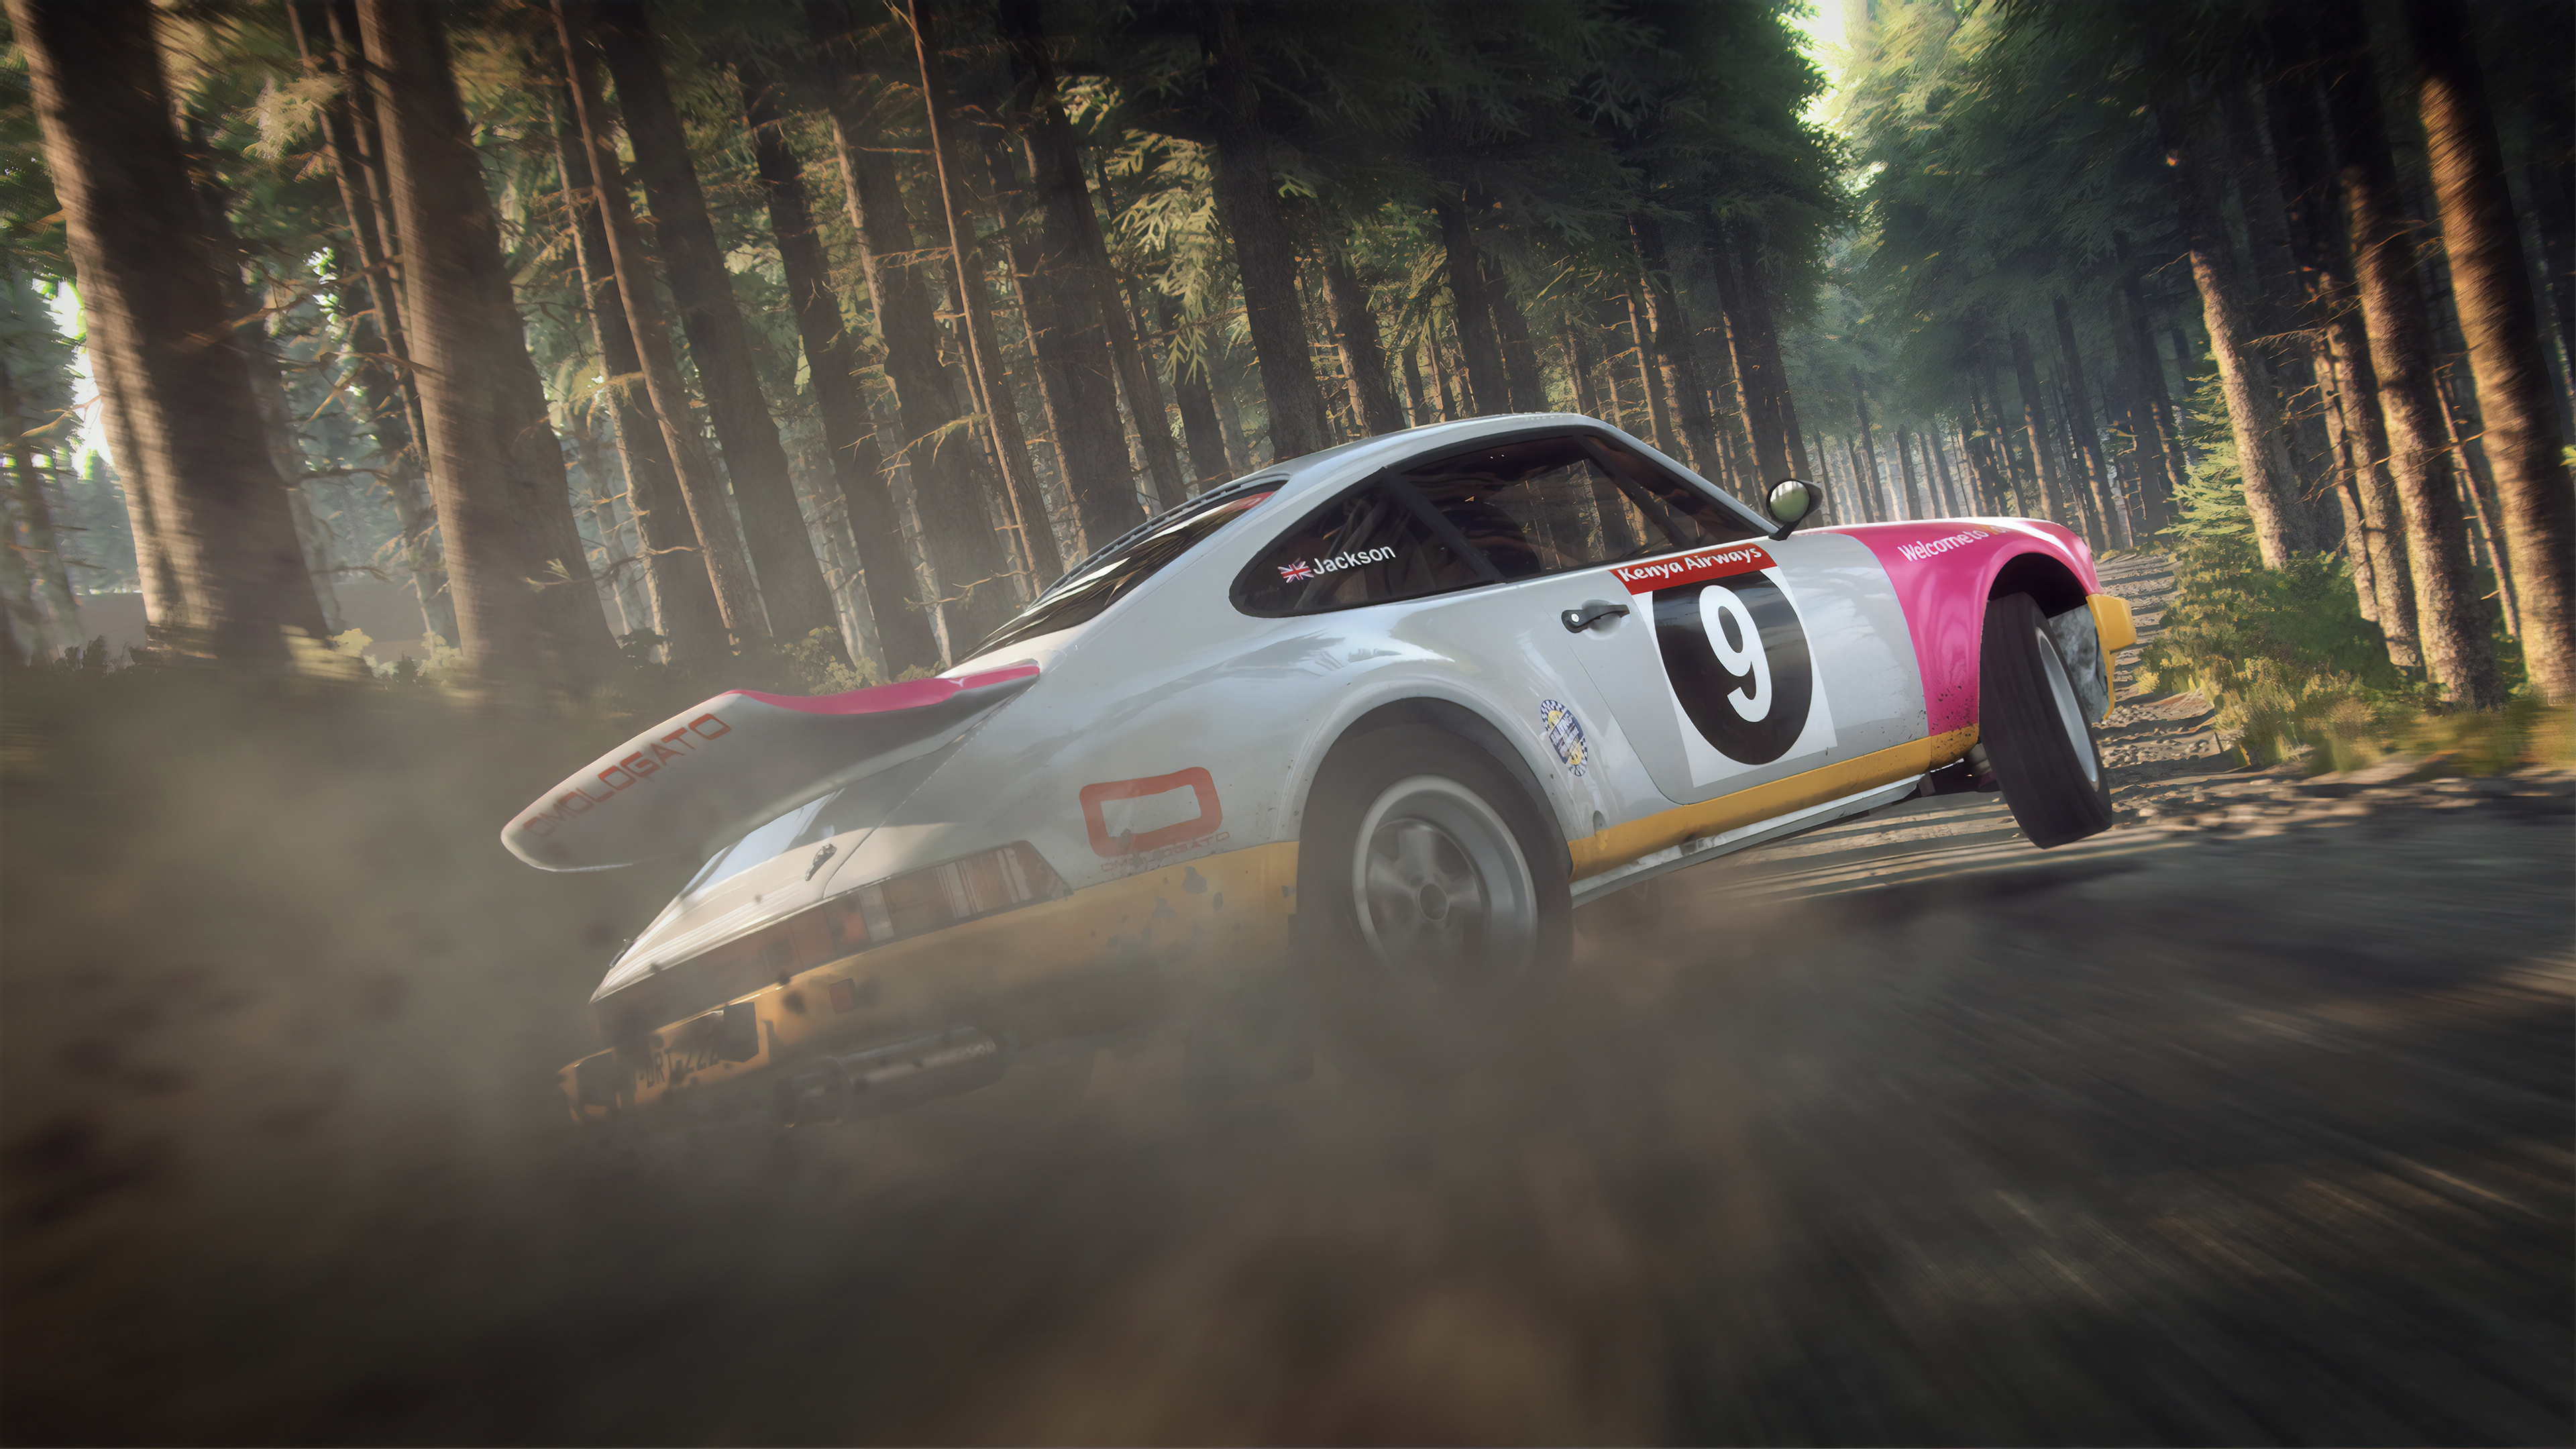 Wallpaper 4k Dirt Rally 2 2019 Games Wallpapers 4k Wallpapers Cars